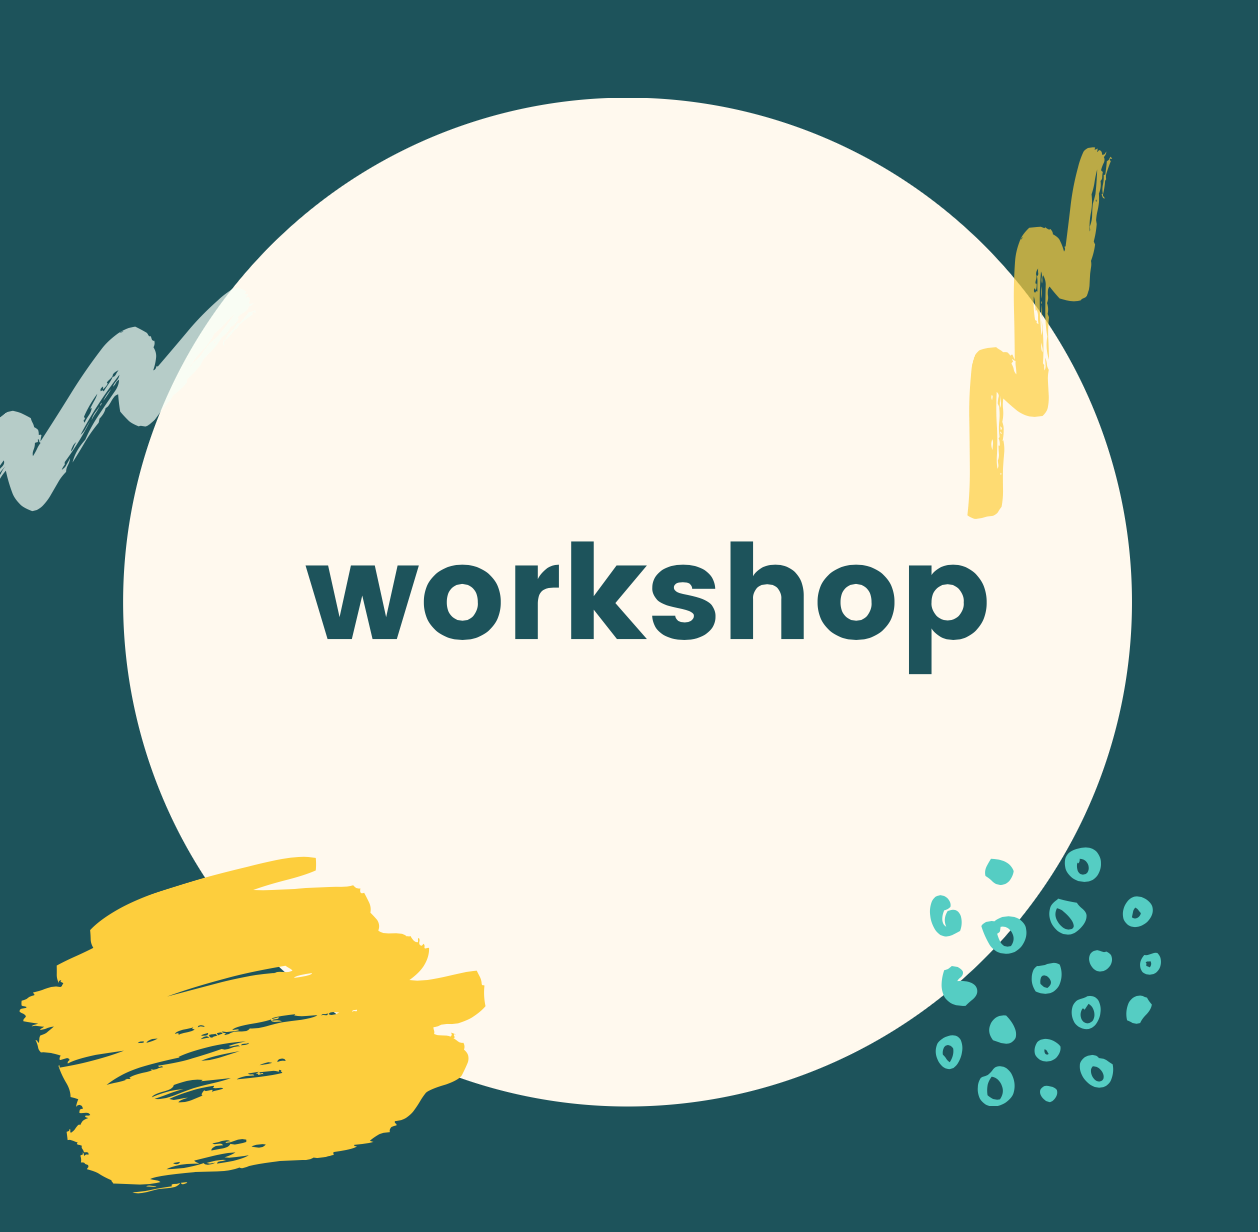 workshops - Itching to learn a new skill? Want a creative and unique way to get quality time with your child? These workshops are designed for building confidence and curiosity!